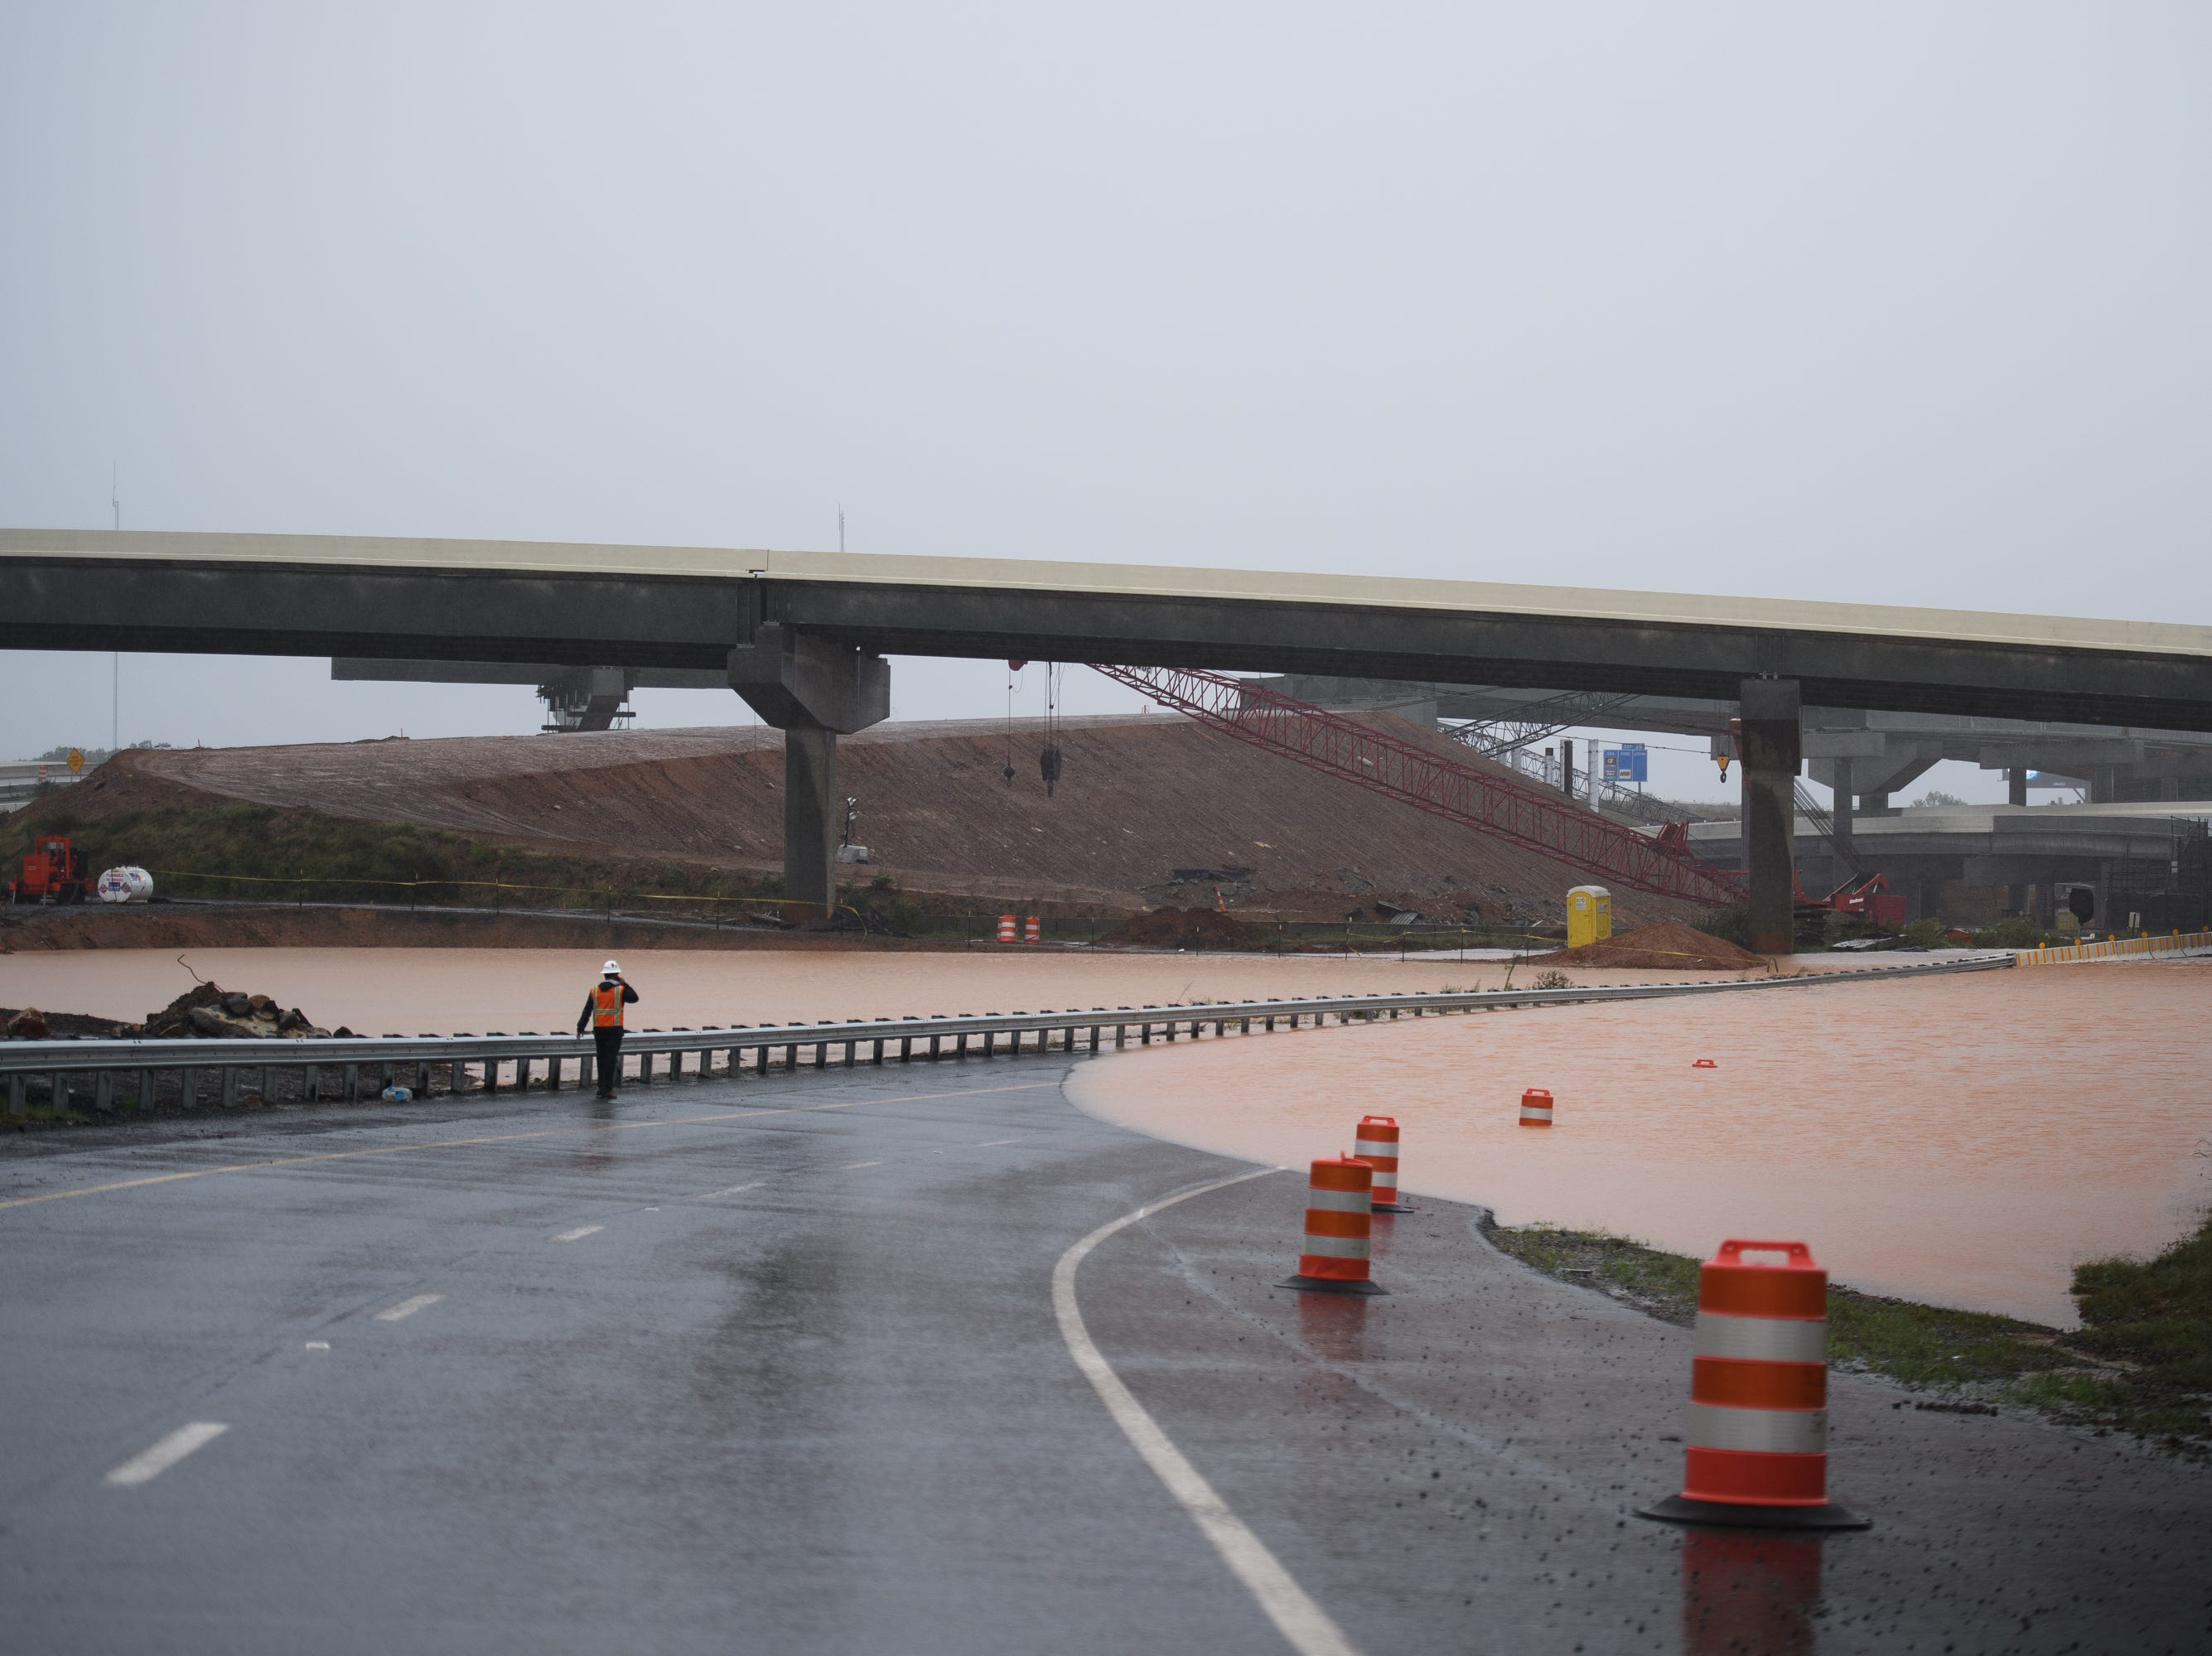 The Gateway Project at the intersection of Interstate 386 and 85 is flooded as Tropical Storm Michael hits the Greenville area on Thursday, Oct. 11, 2018.